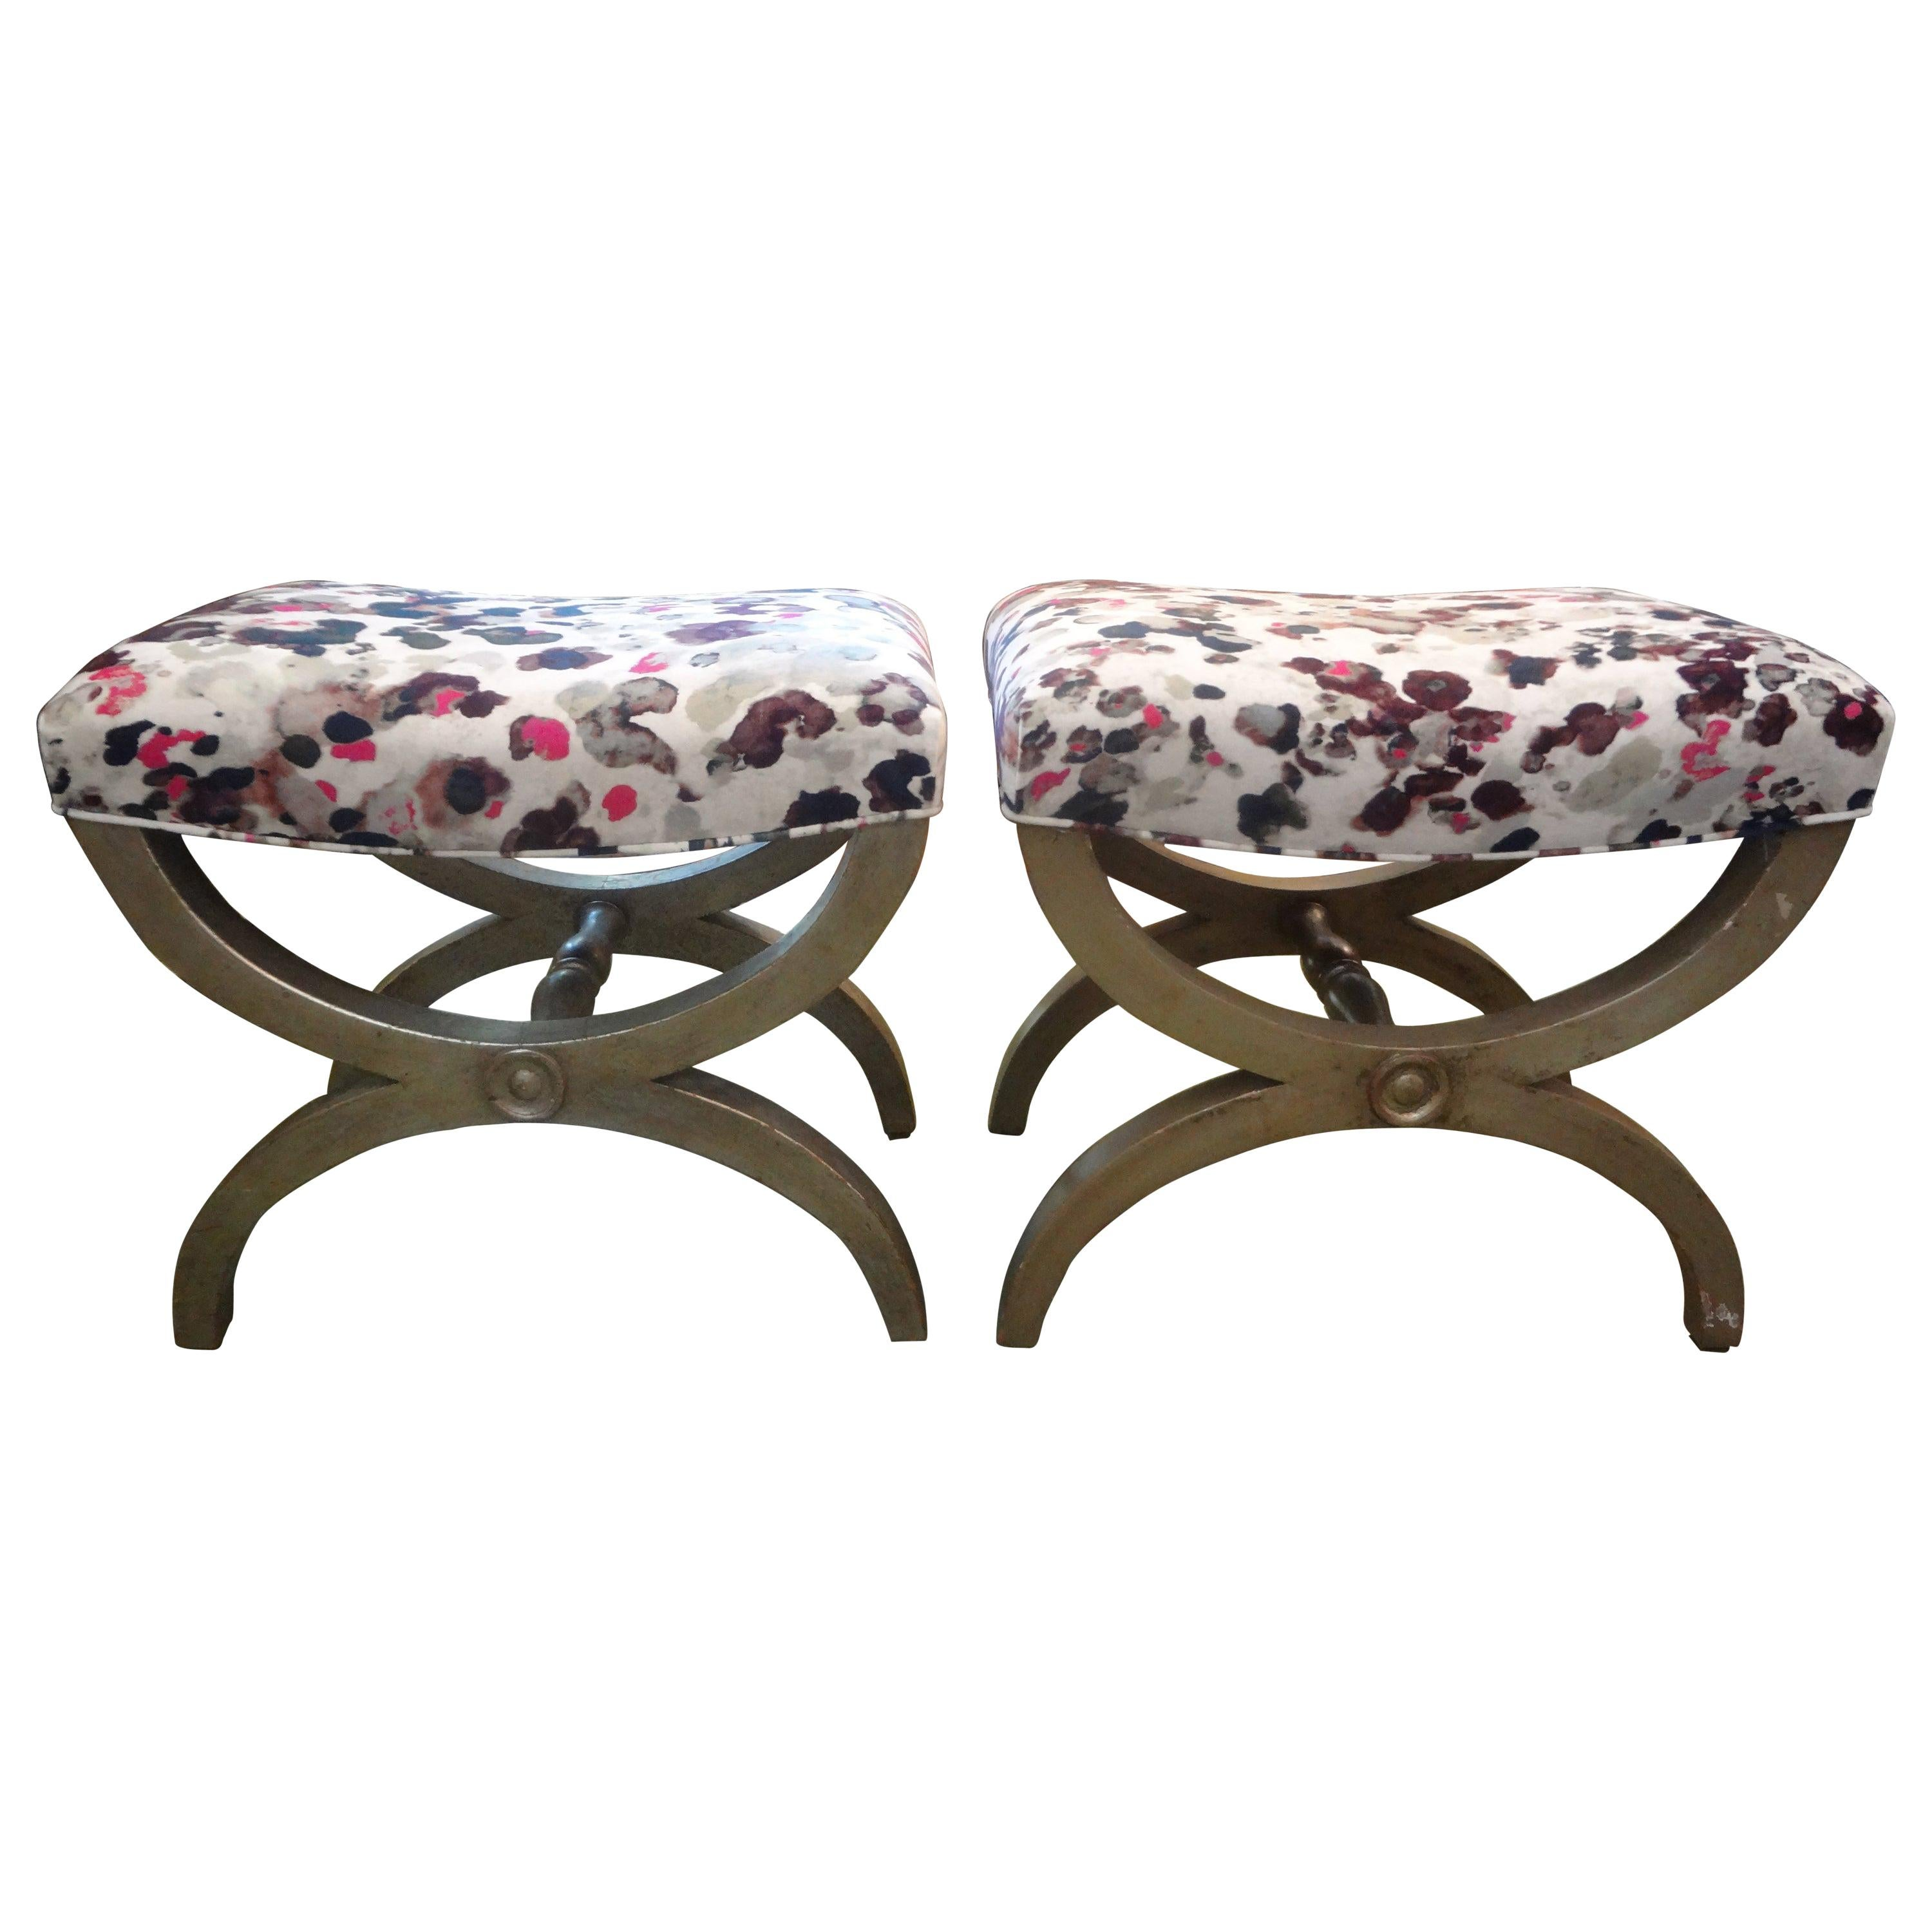 Pair of Vintage Italian Silver Giltwood Benches or Ottomans